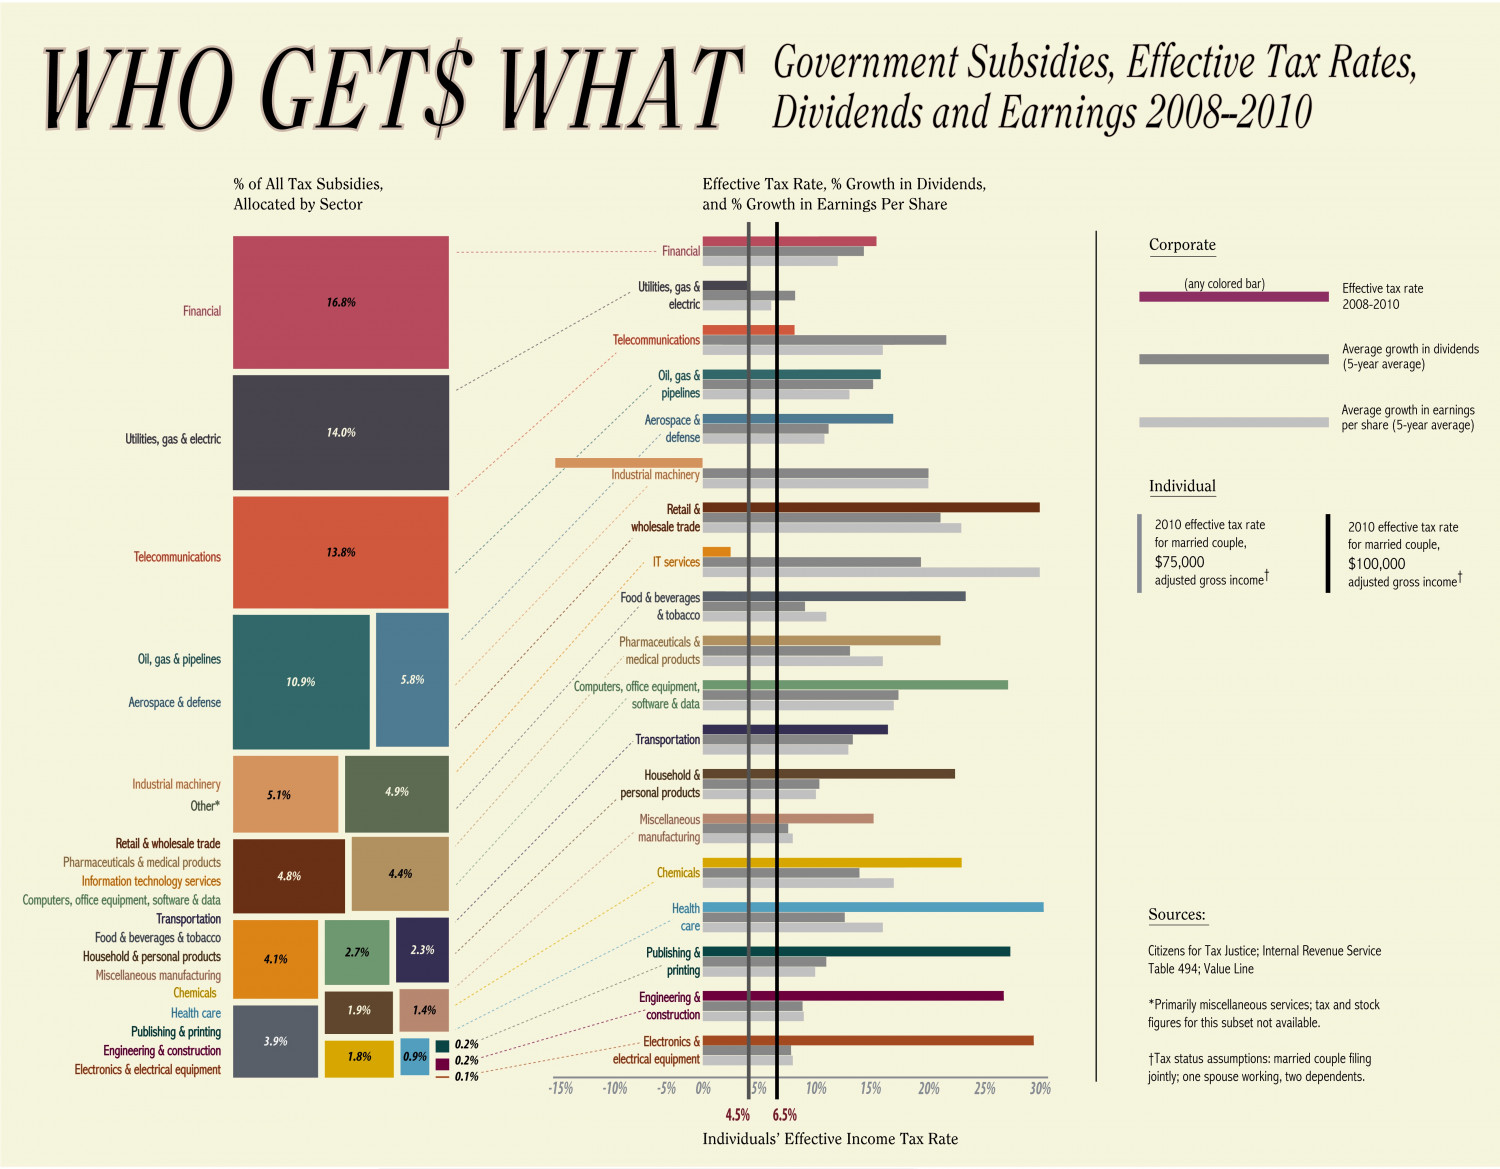 Who Get$ What: Subsidies, Effective Tax Rates, Dividends and Earnings per Share 2008-2010 Infographic